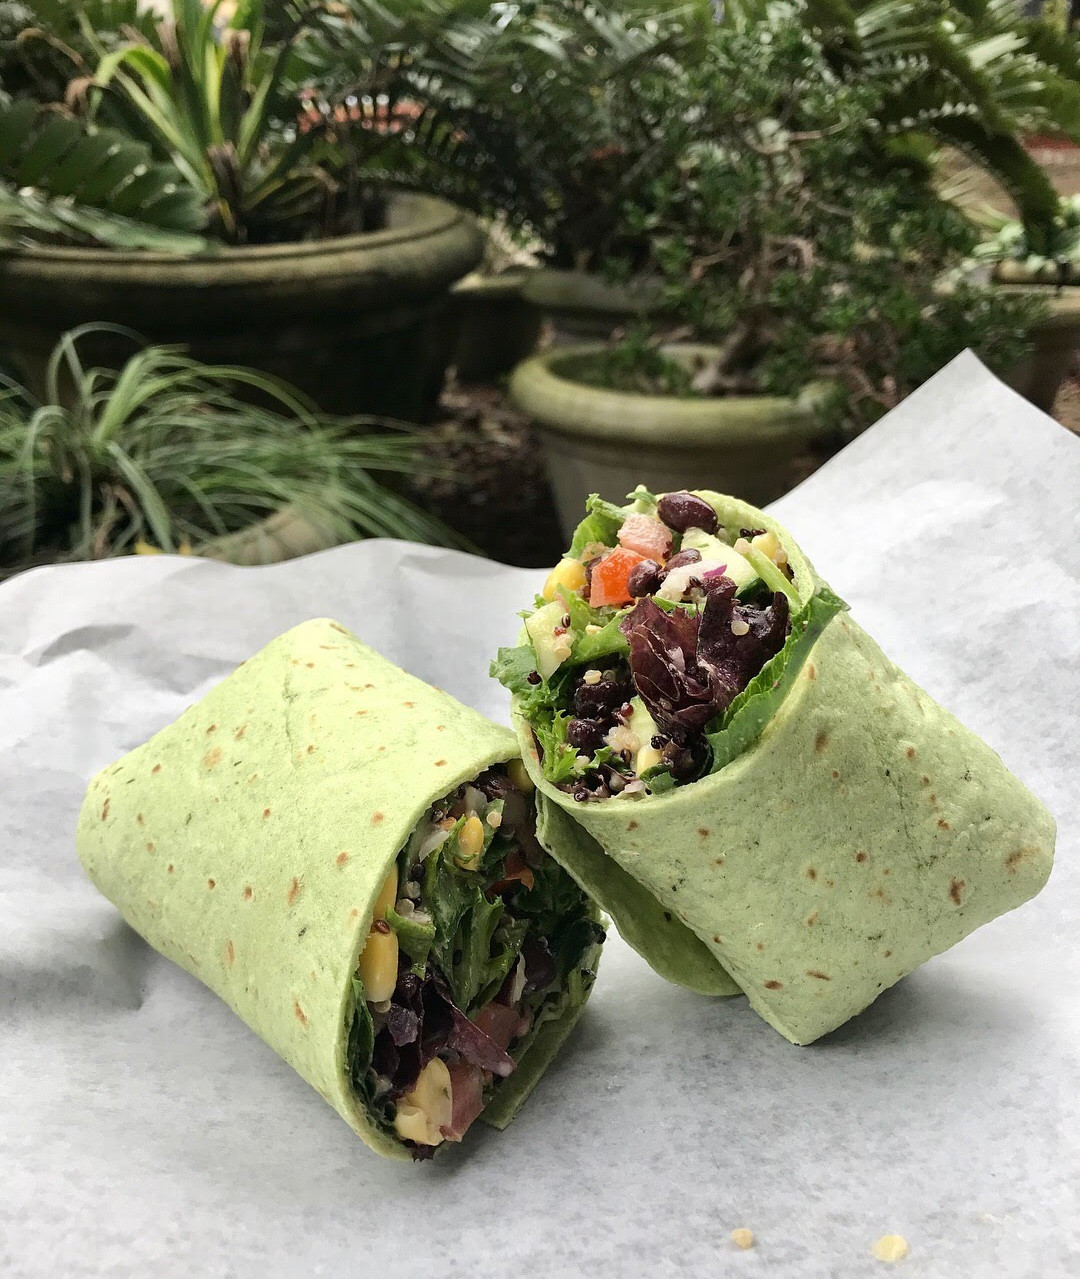 Chopped and Wrapped spinach wrap